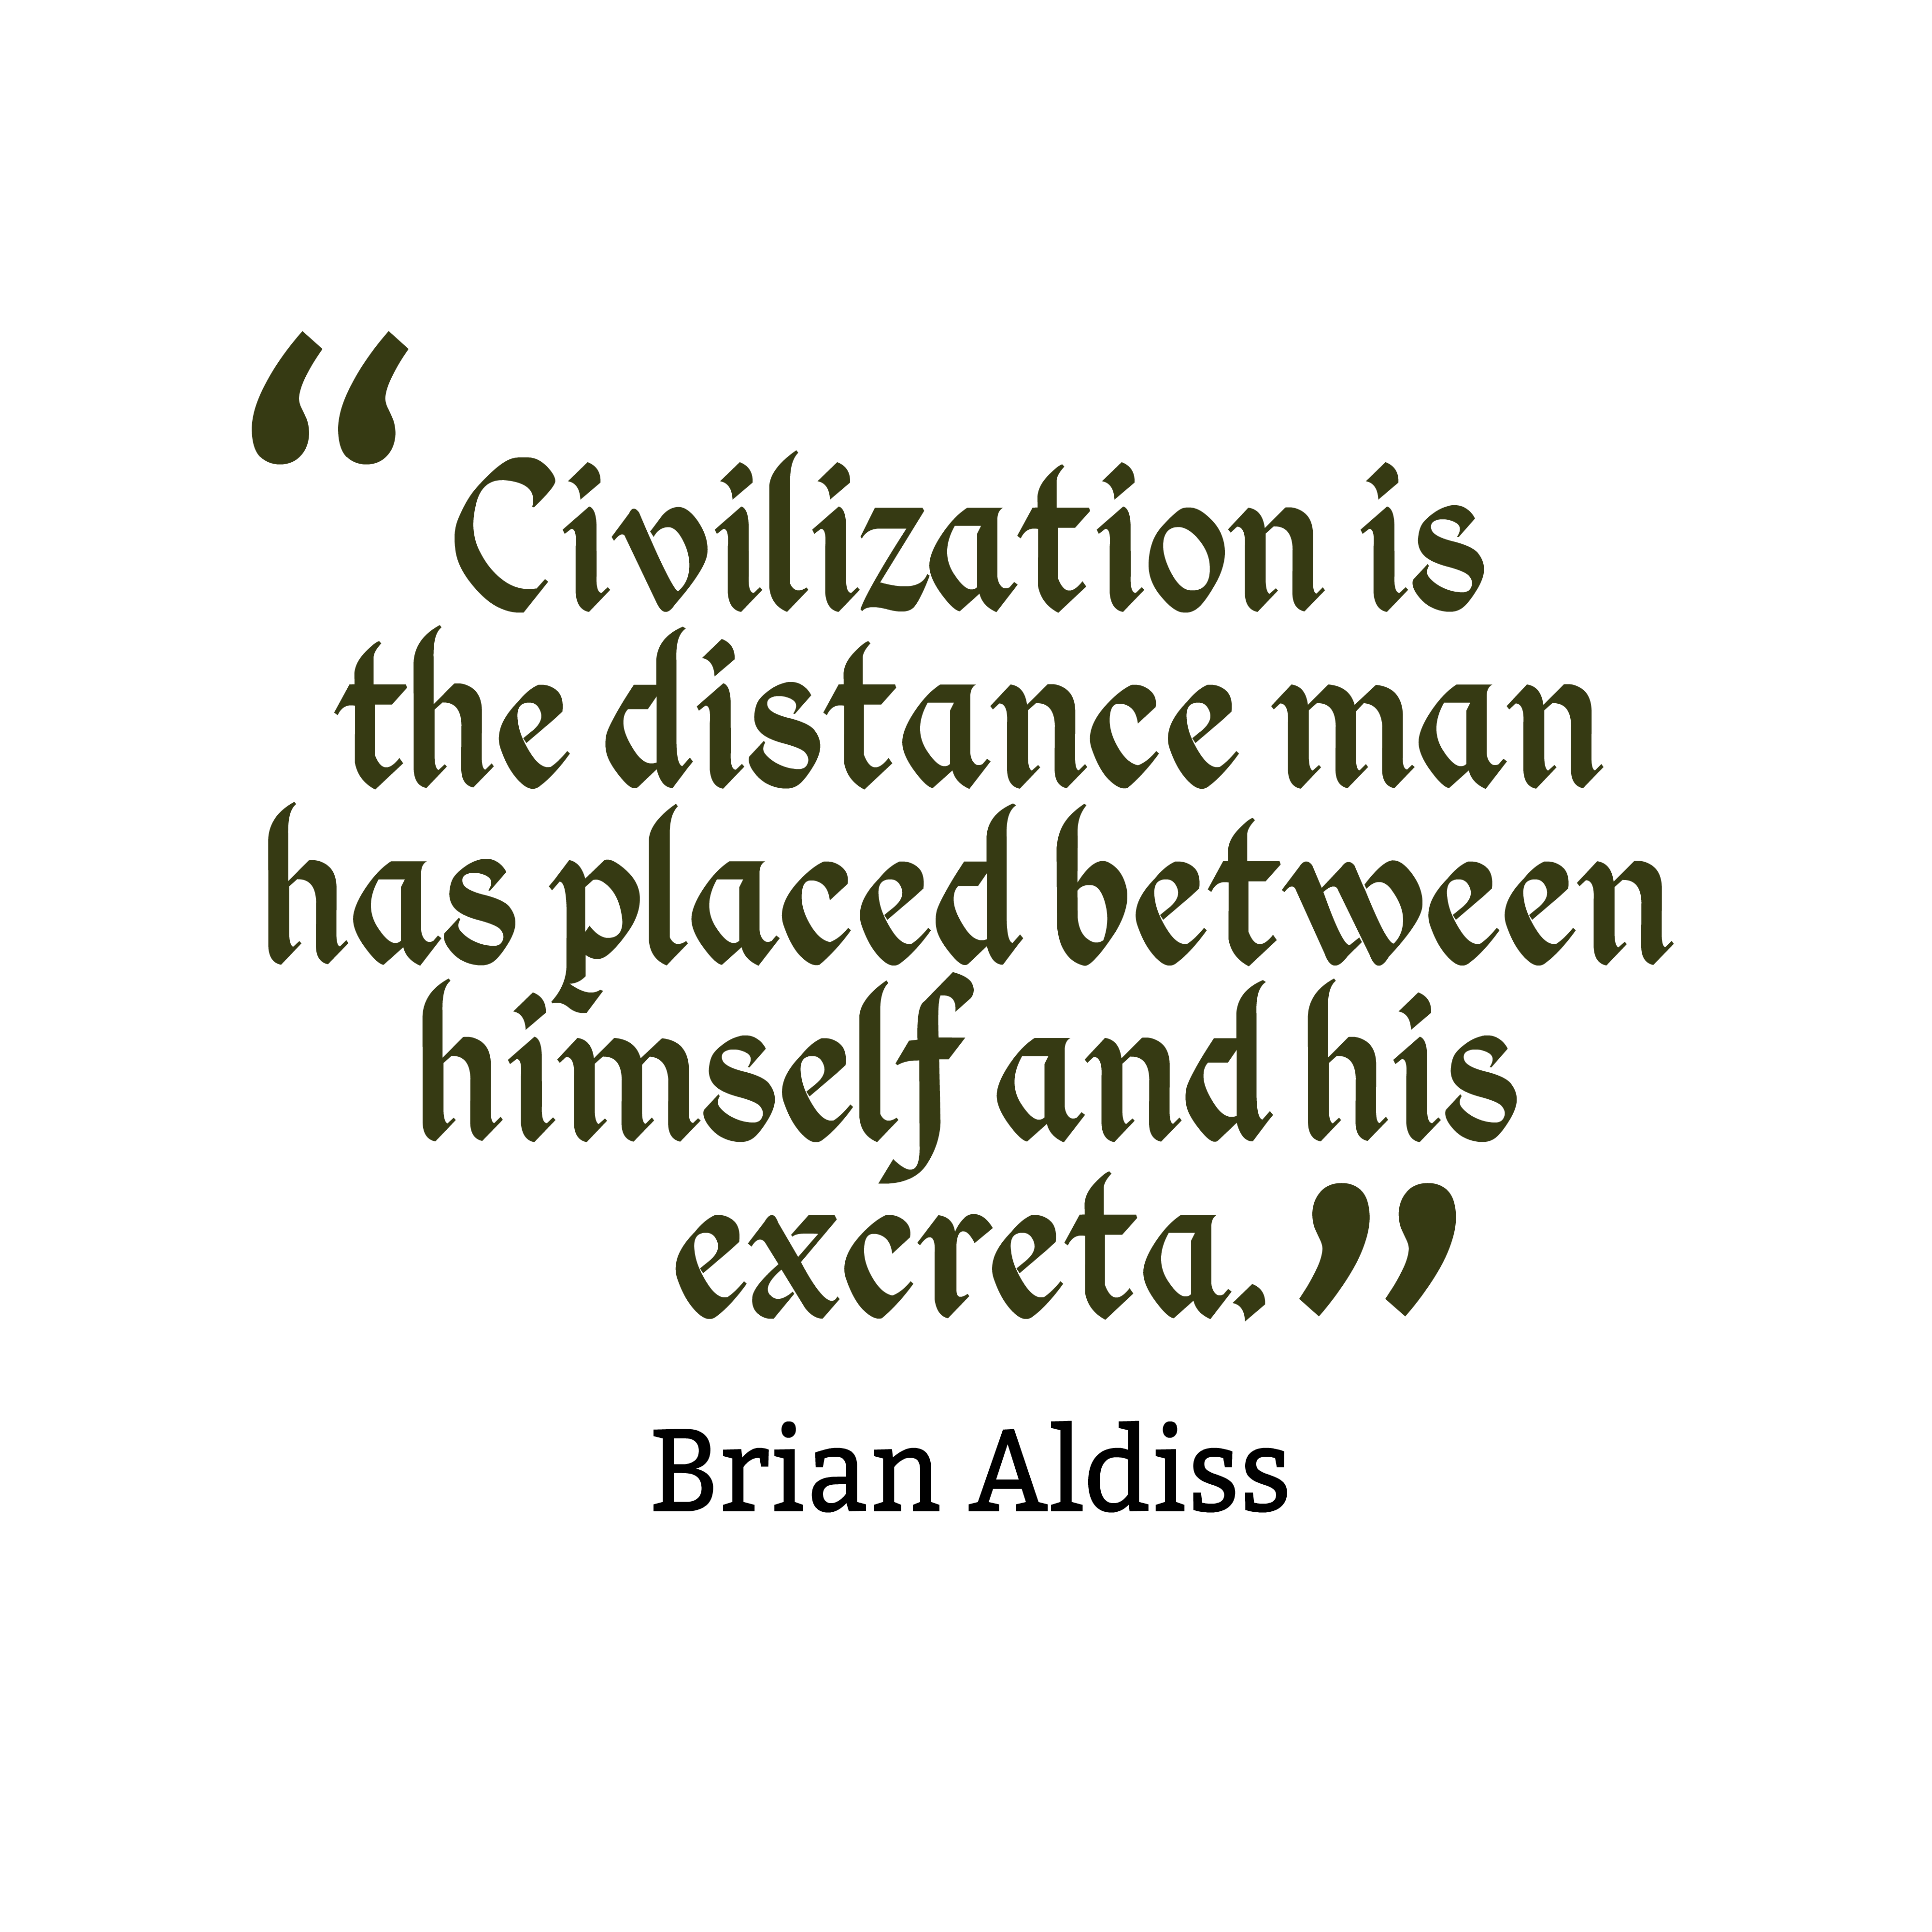 Civilization is the distance man has placed between himself and his excreta. Brian Aldiss